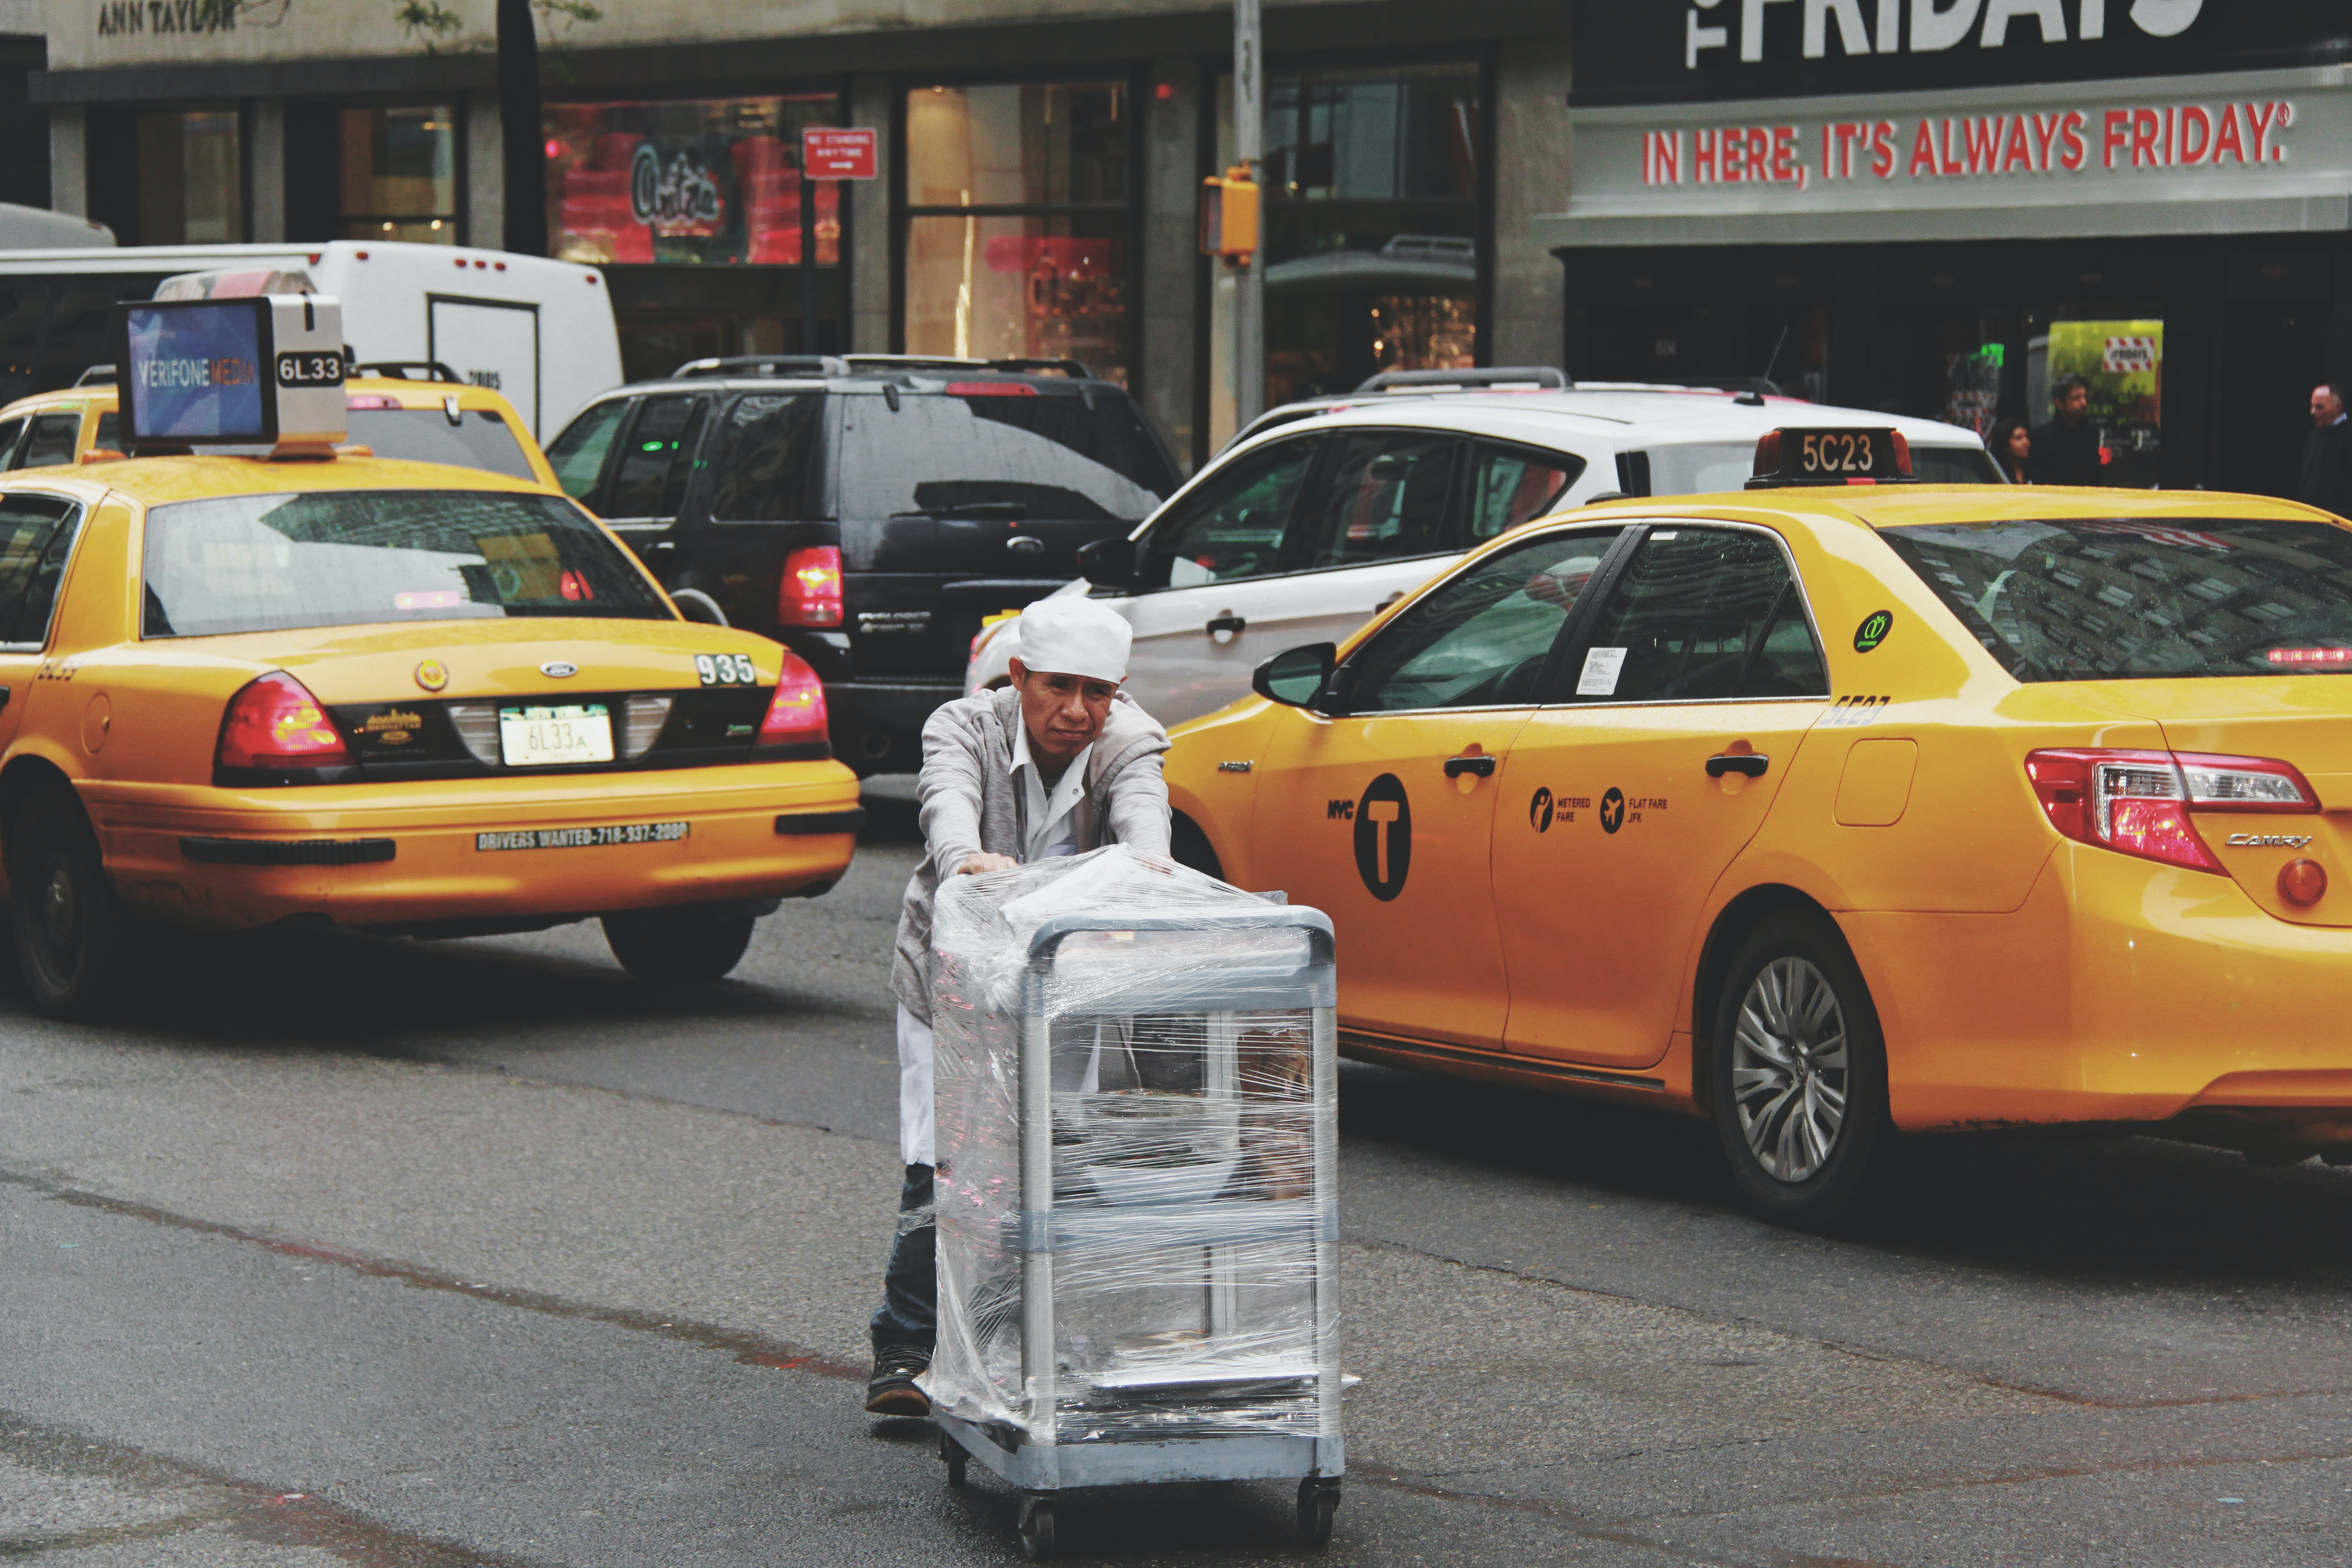 man pushing gray bus cart on road near two yellow taxi cabs